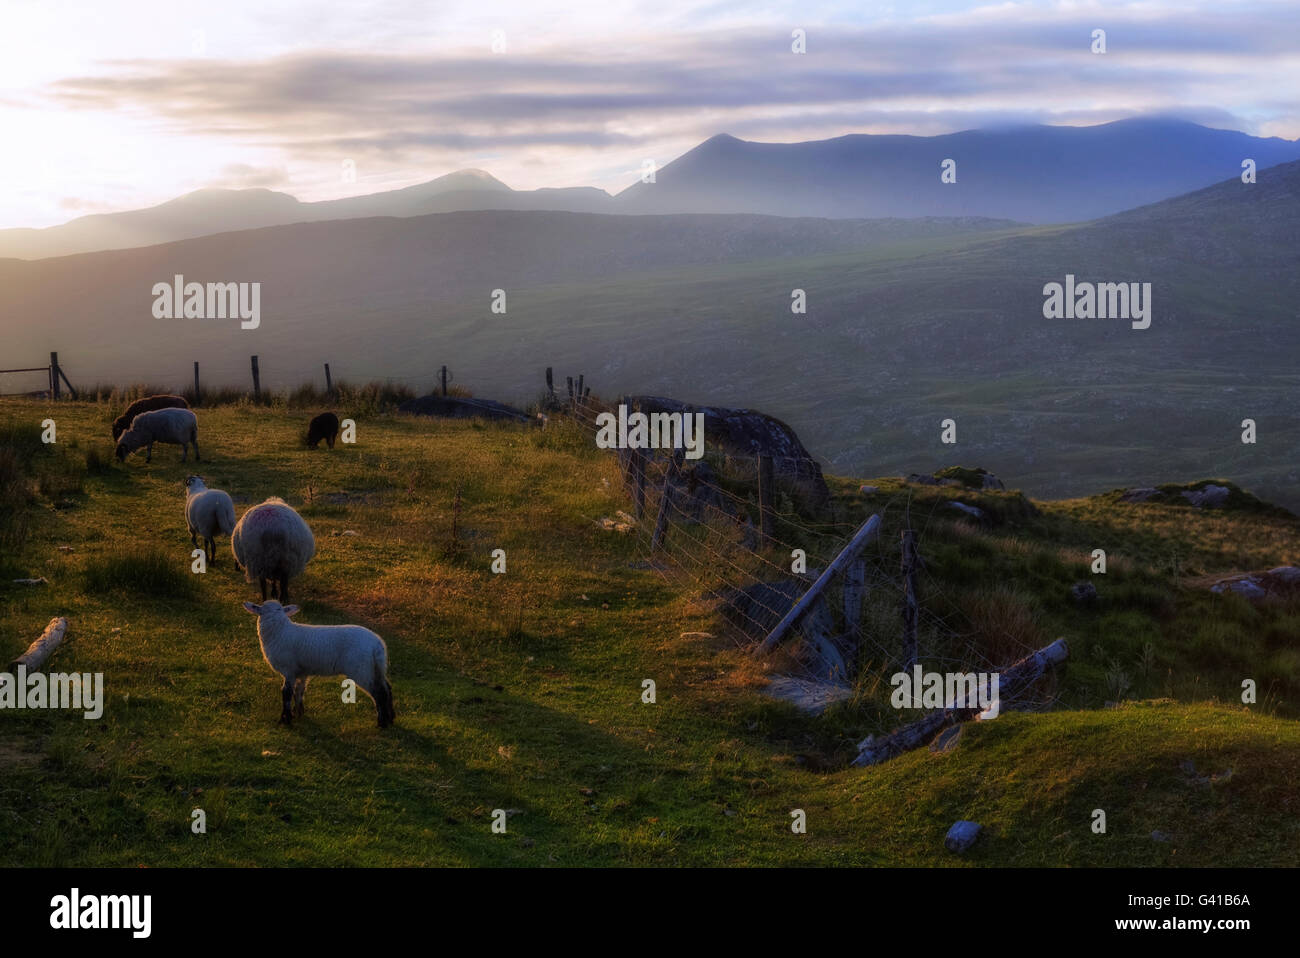 Moll's Gap, Macgillycuddy's Reeks, Ring of Kerry, Ireland - Stock Image